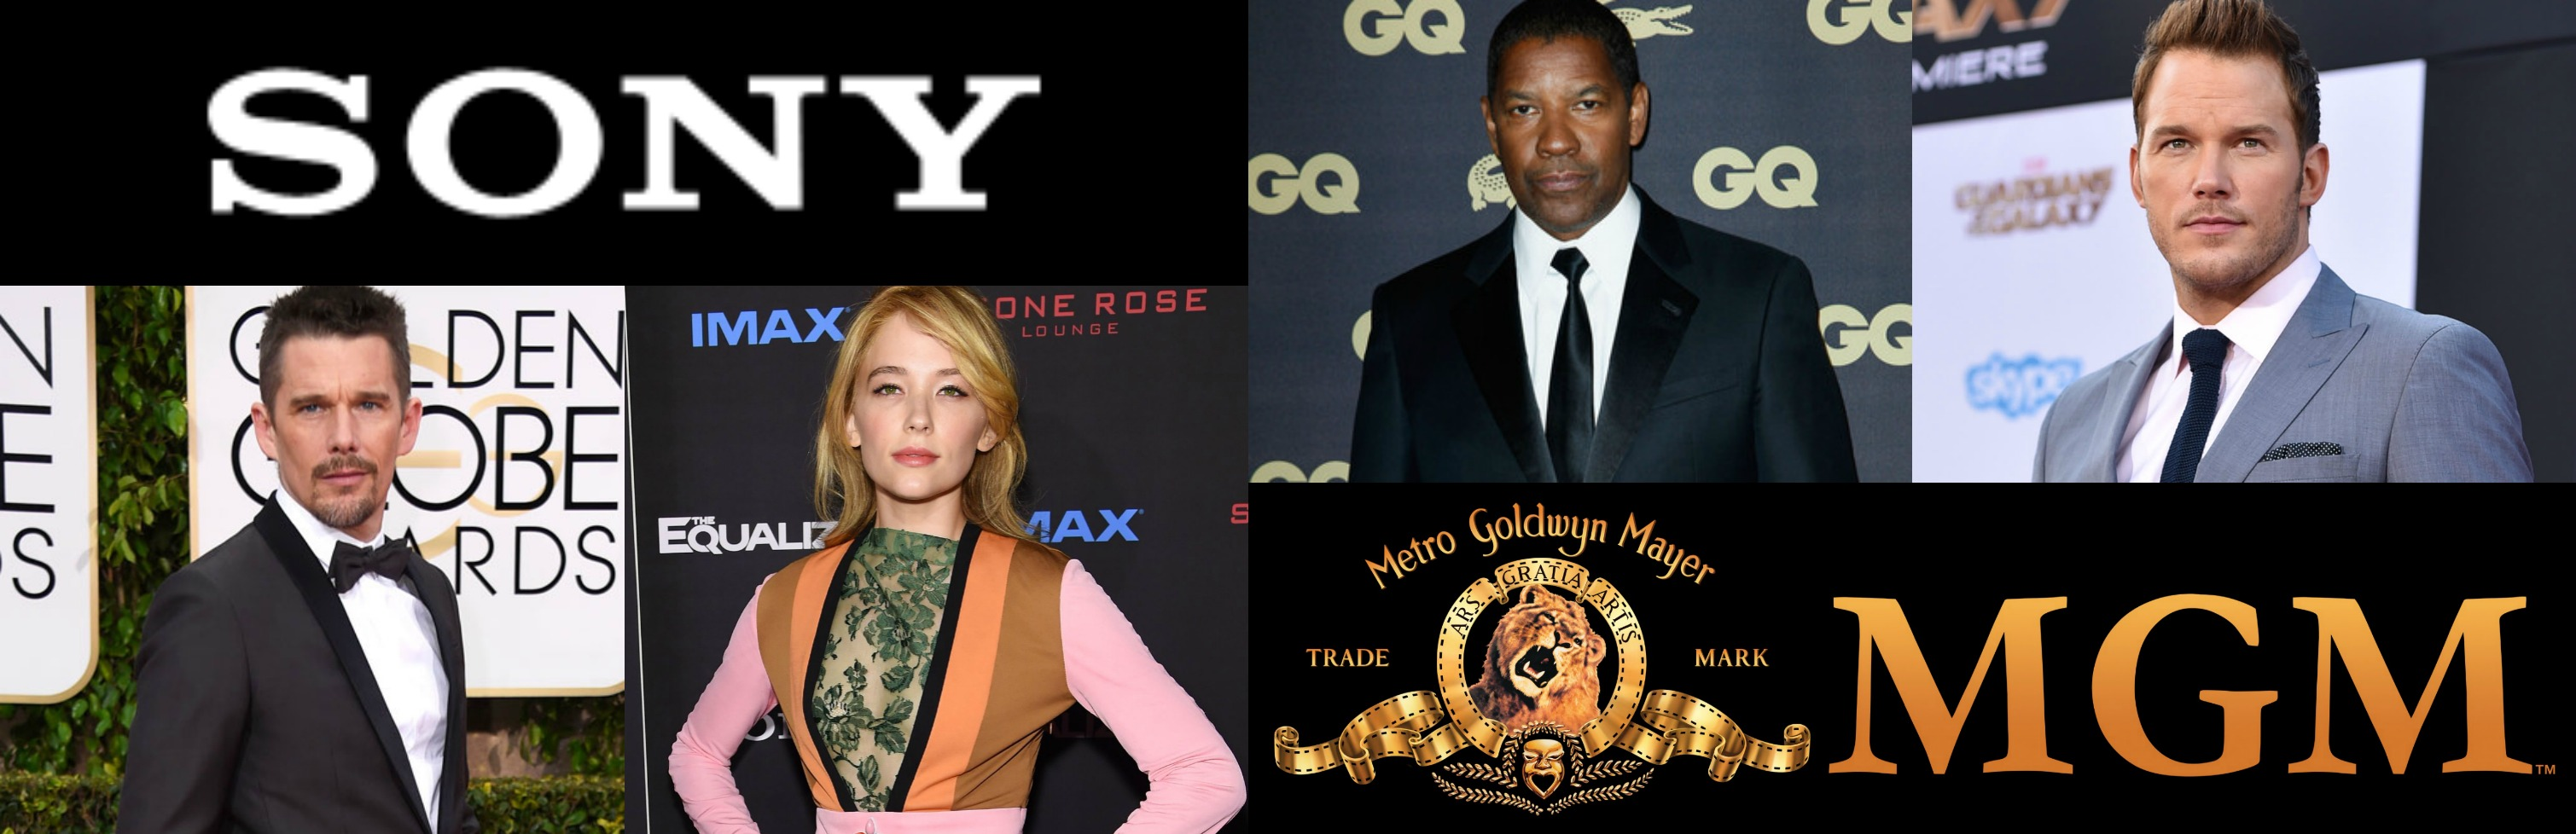 sony and mgm merger essay